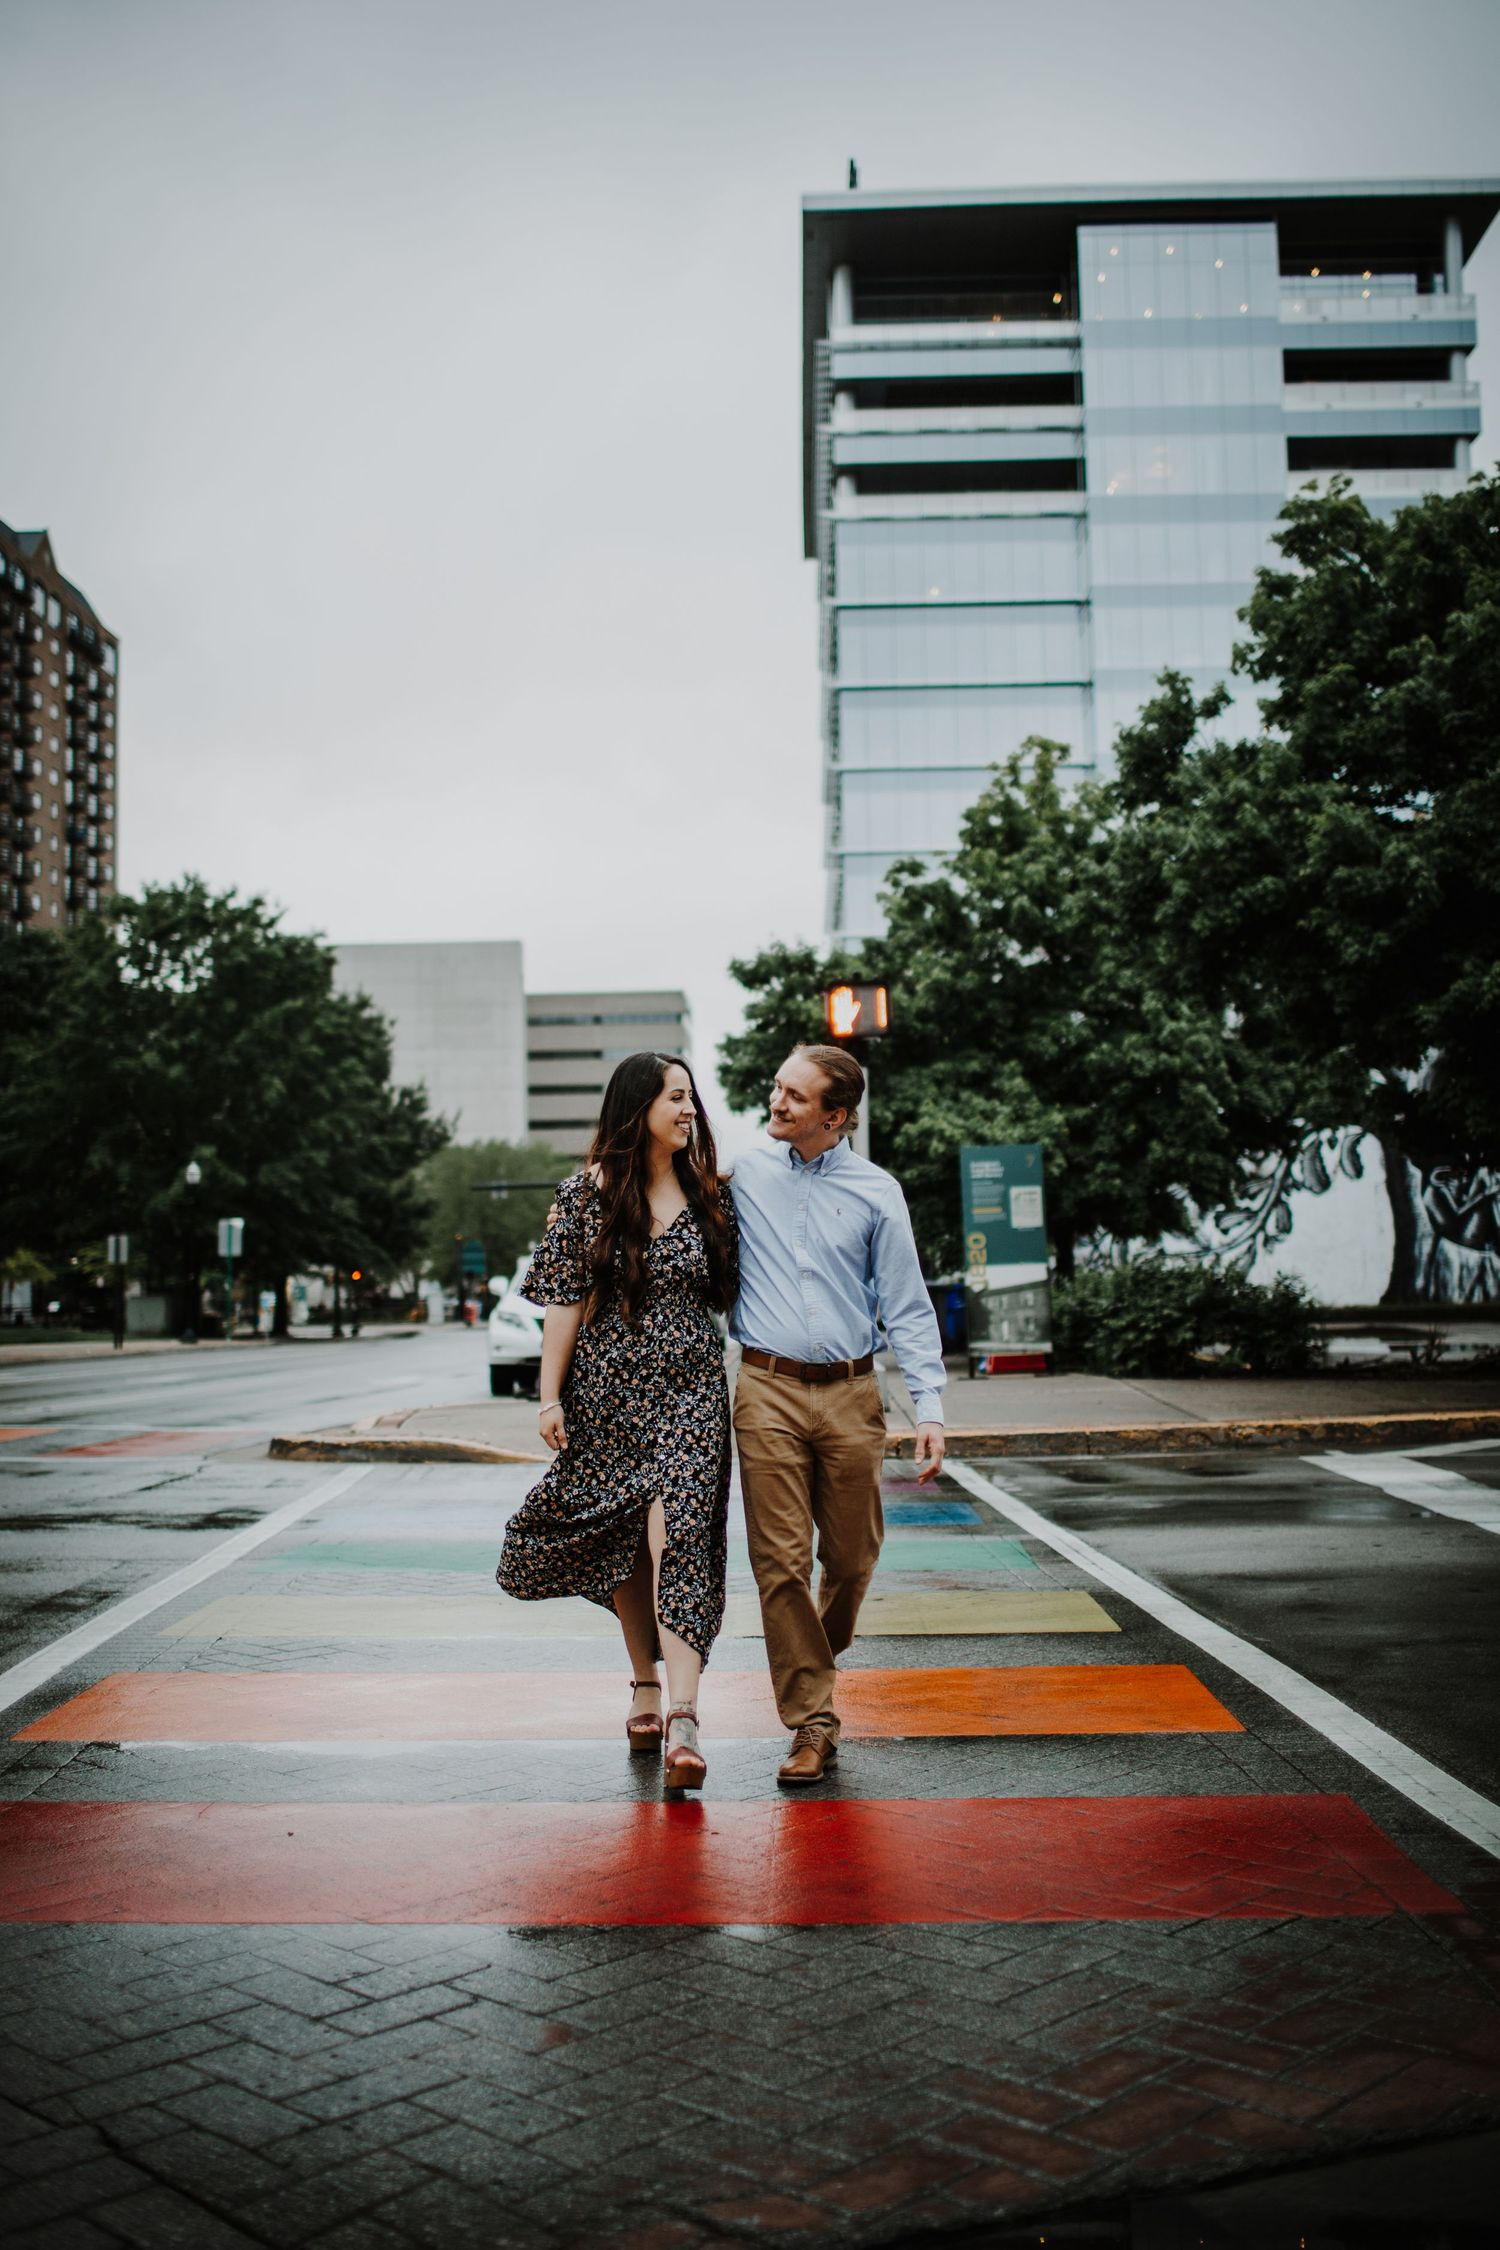 Moody wedding photography Lexington central KY Kentucky unique engagement session couples near me local photographer